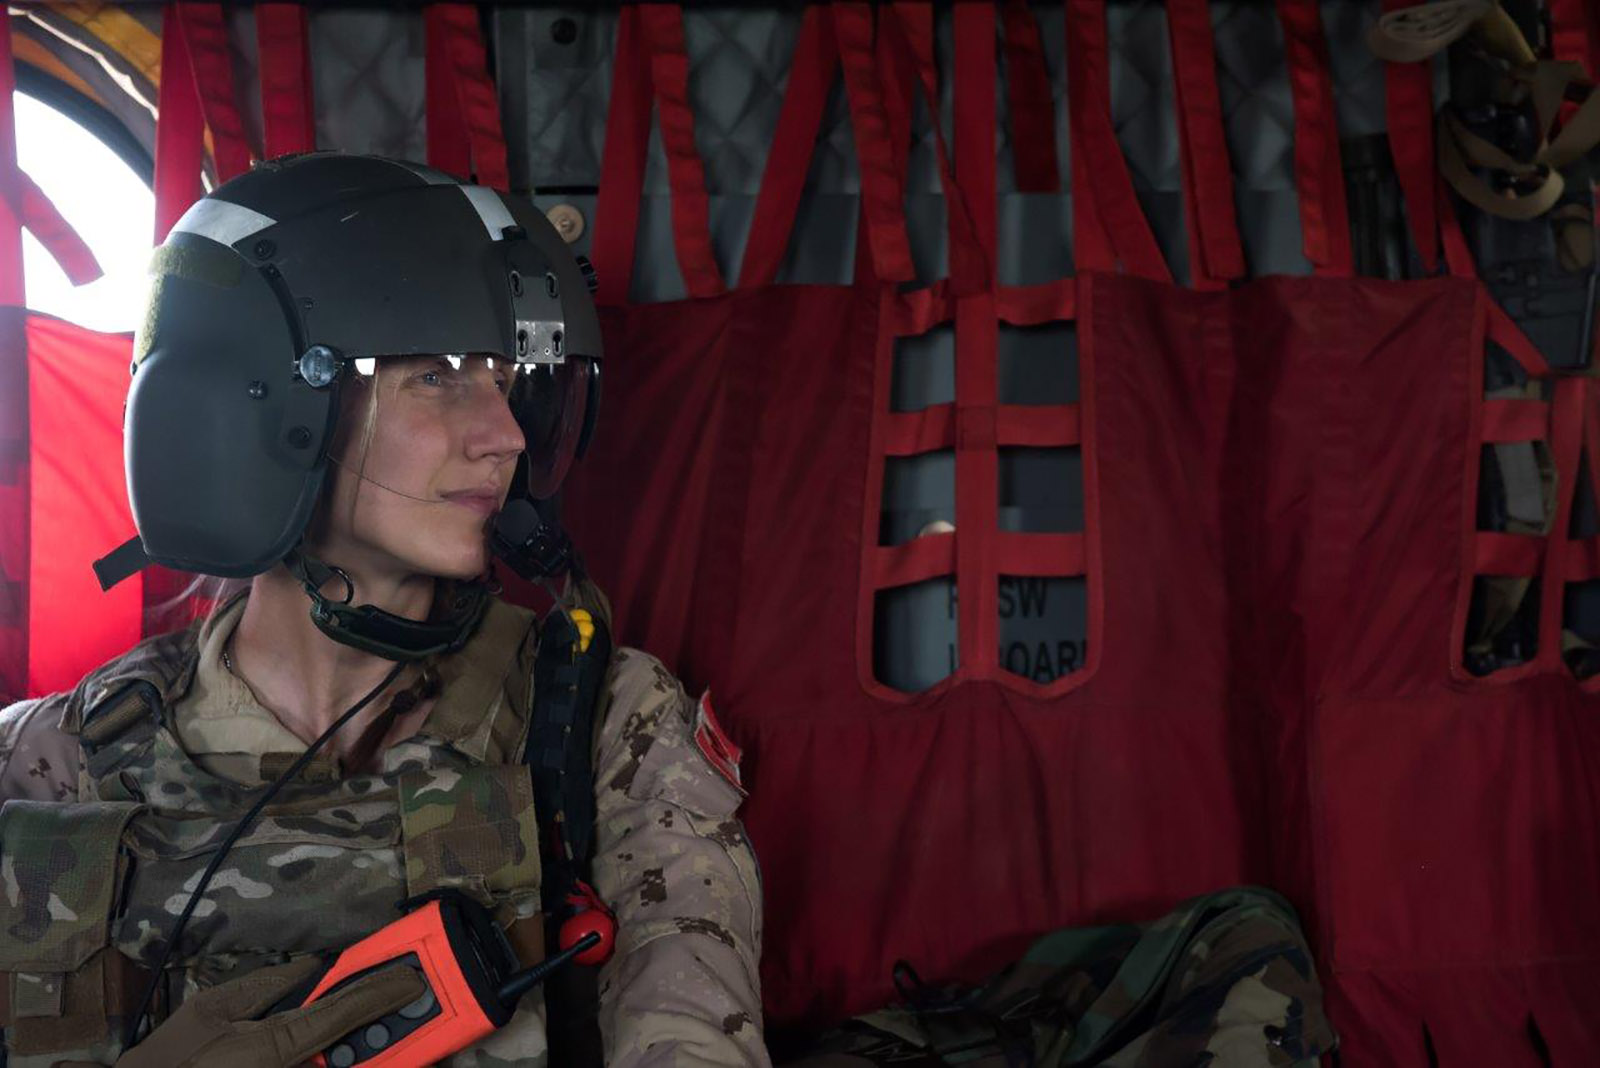 Task Force Mali conducted Forward Aeromedical Training in the vicinity of Gao to keep their skills sharp while deployed on Operation PRESENCE.